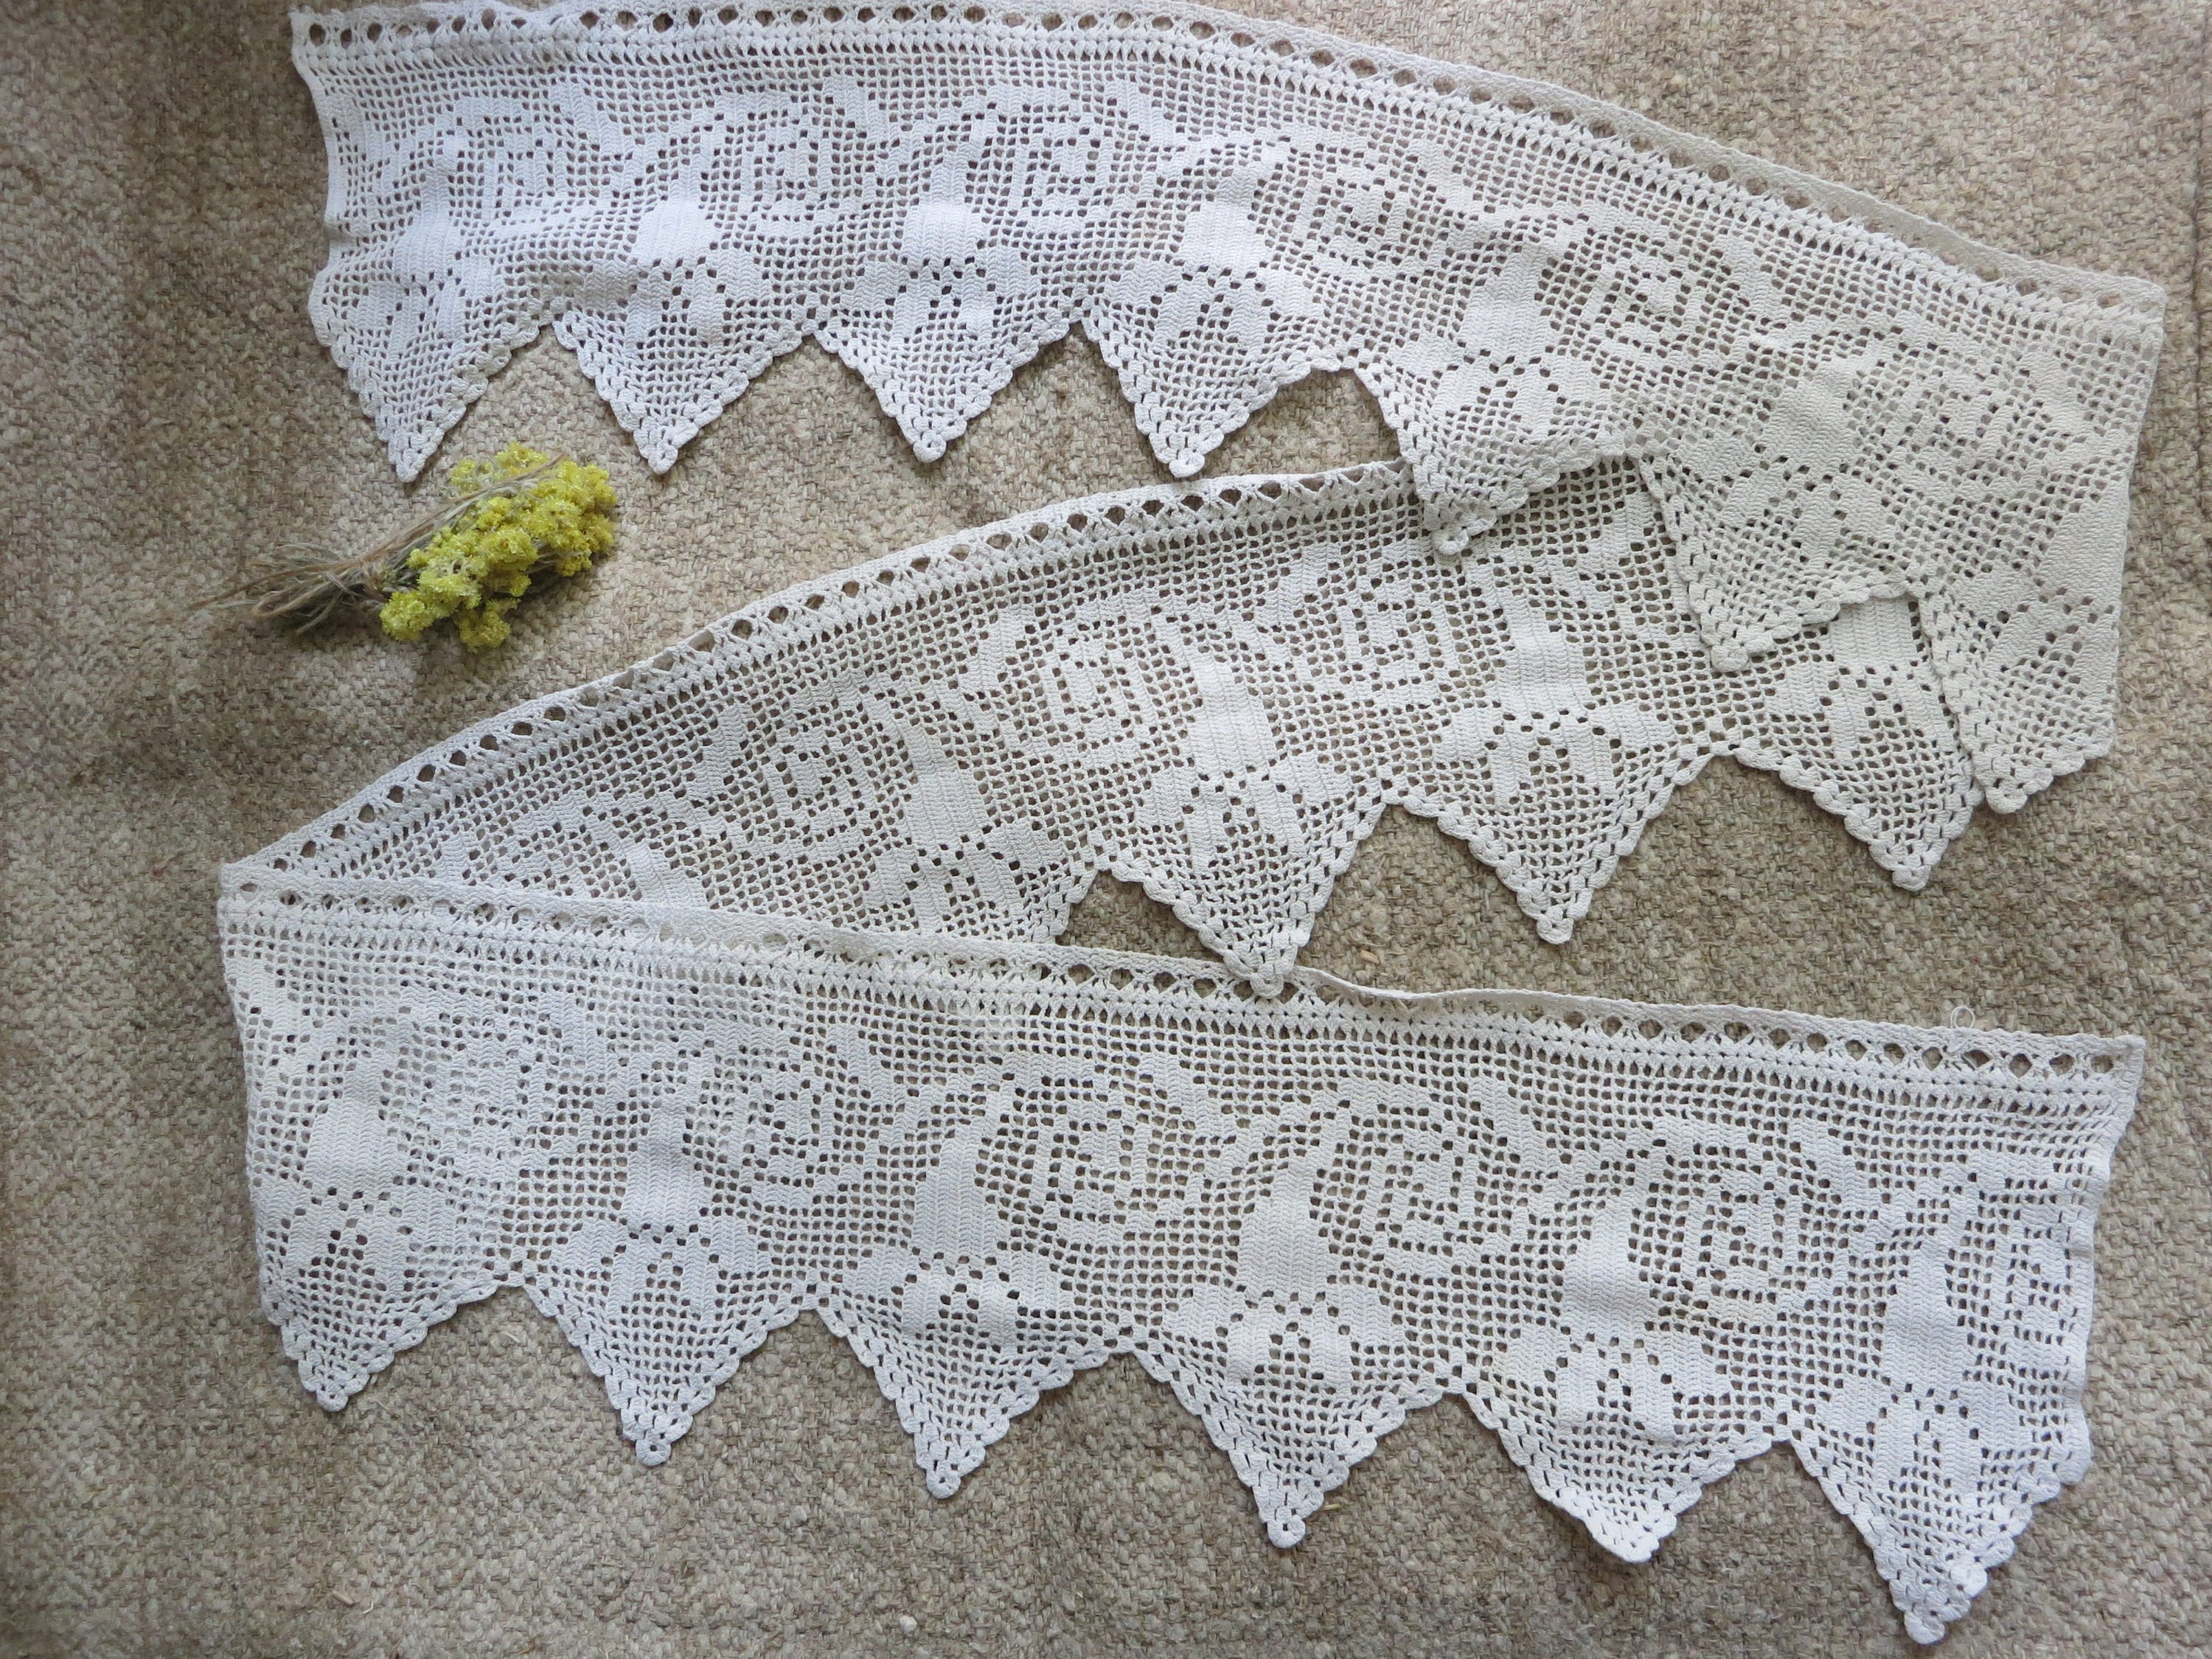 Crochet Lace handmade lace crochet trim edging antique lace